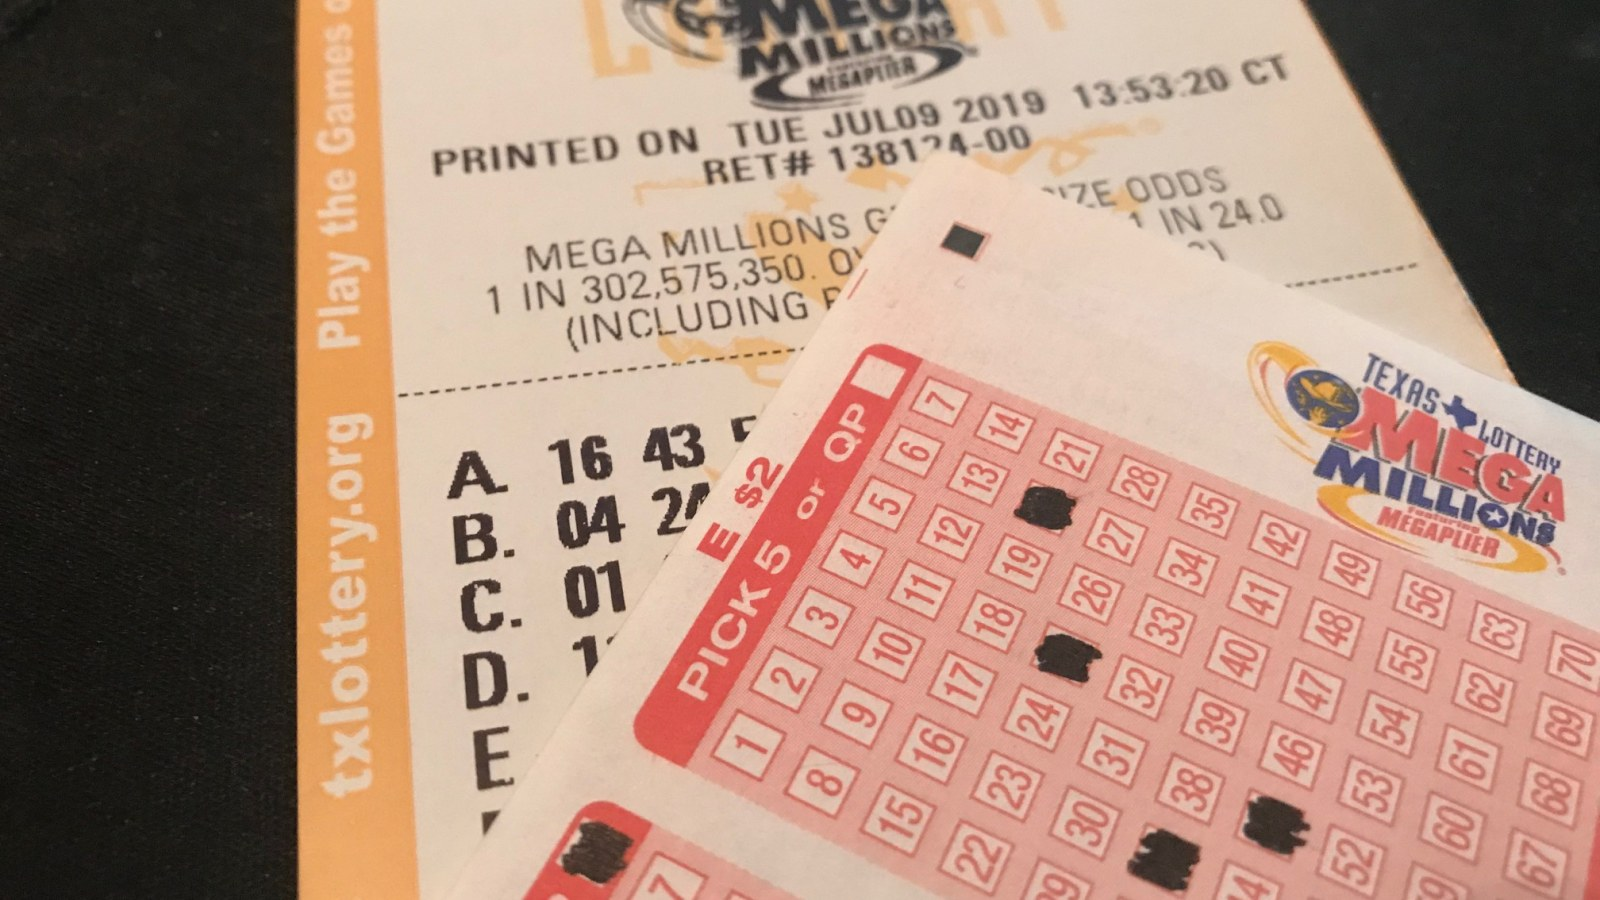 Mega Millions Numbers For 12 04 20 Friday Jackpot Was 244 Million